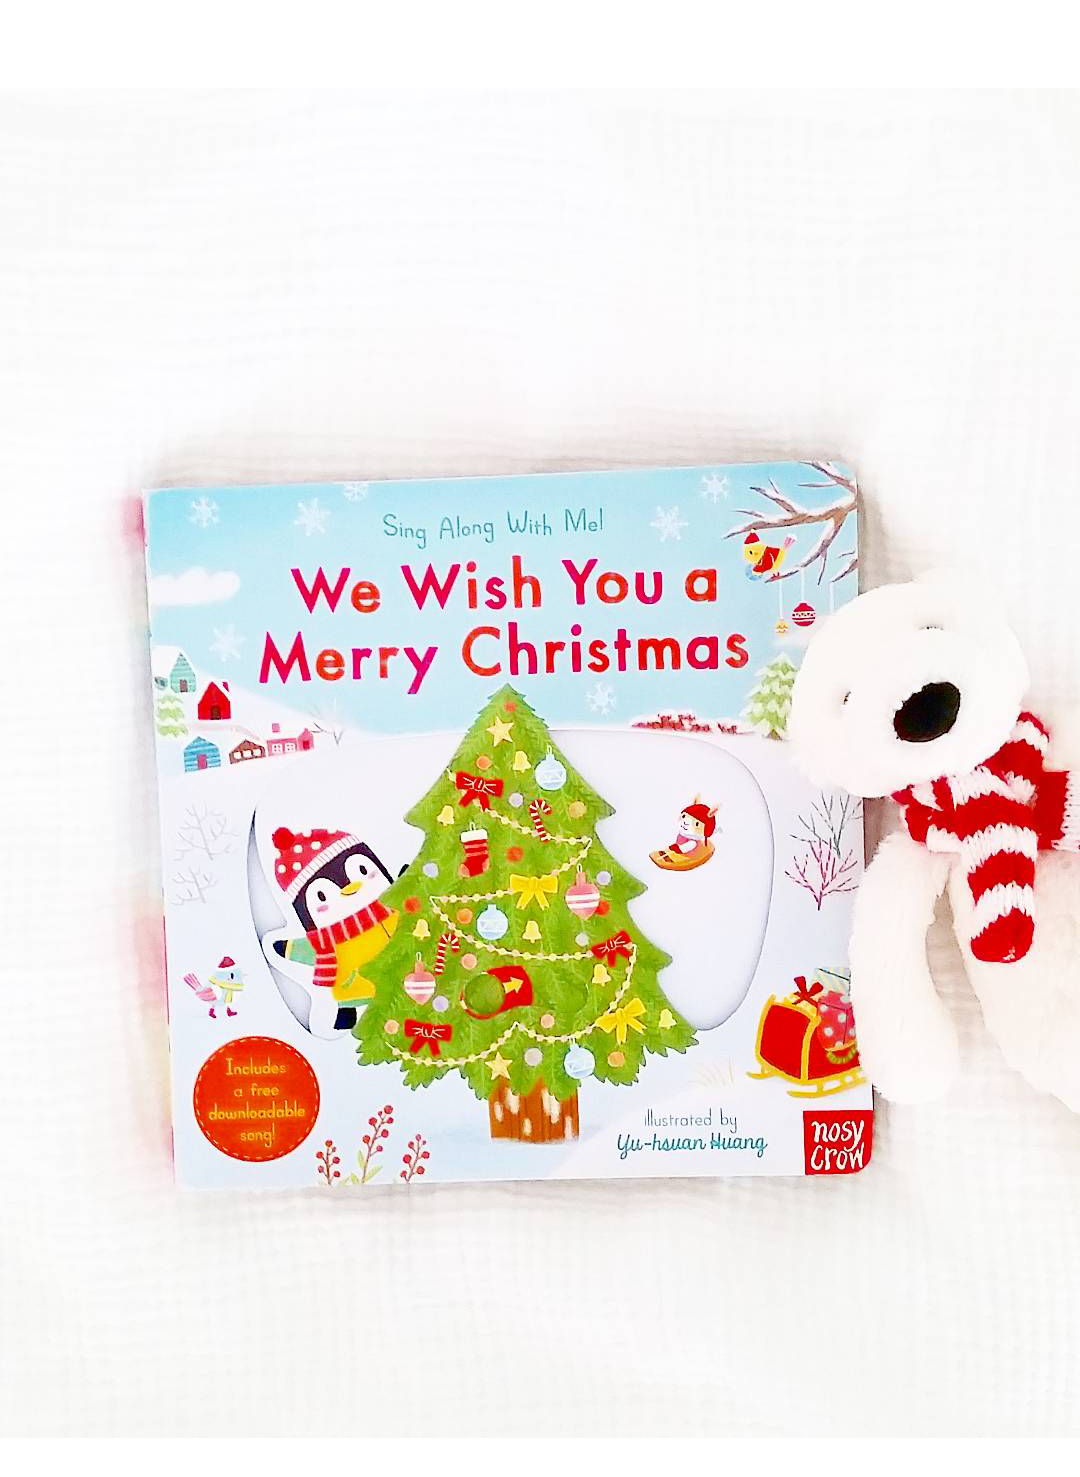 We Wish You a Merry Christmas: Sing Along With Me Giveaway!